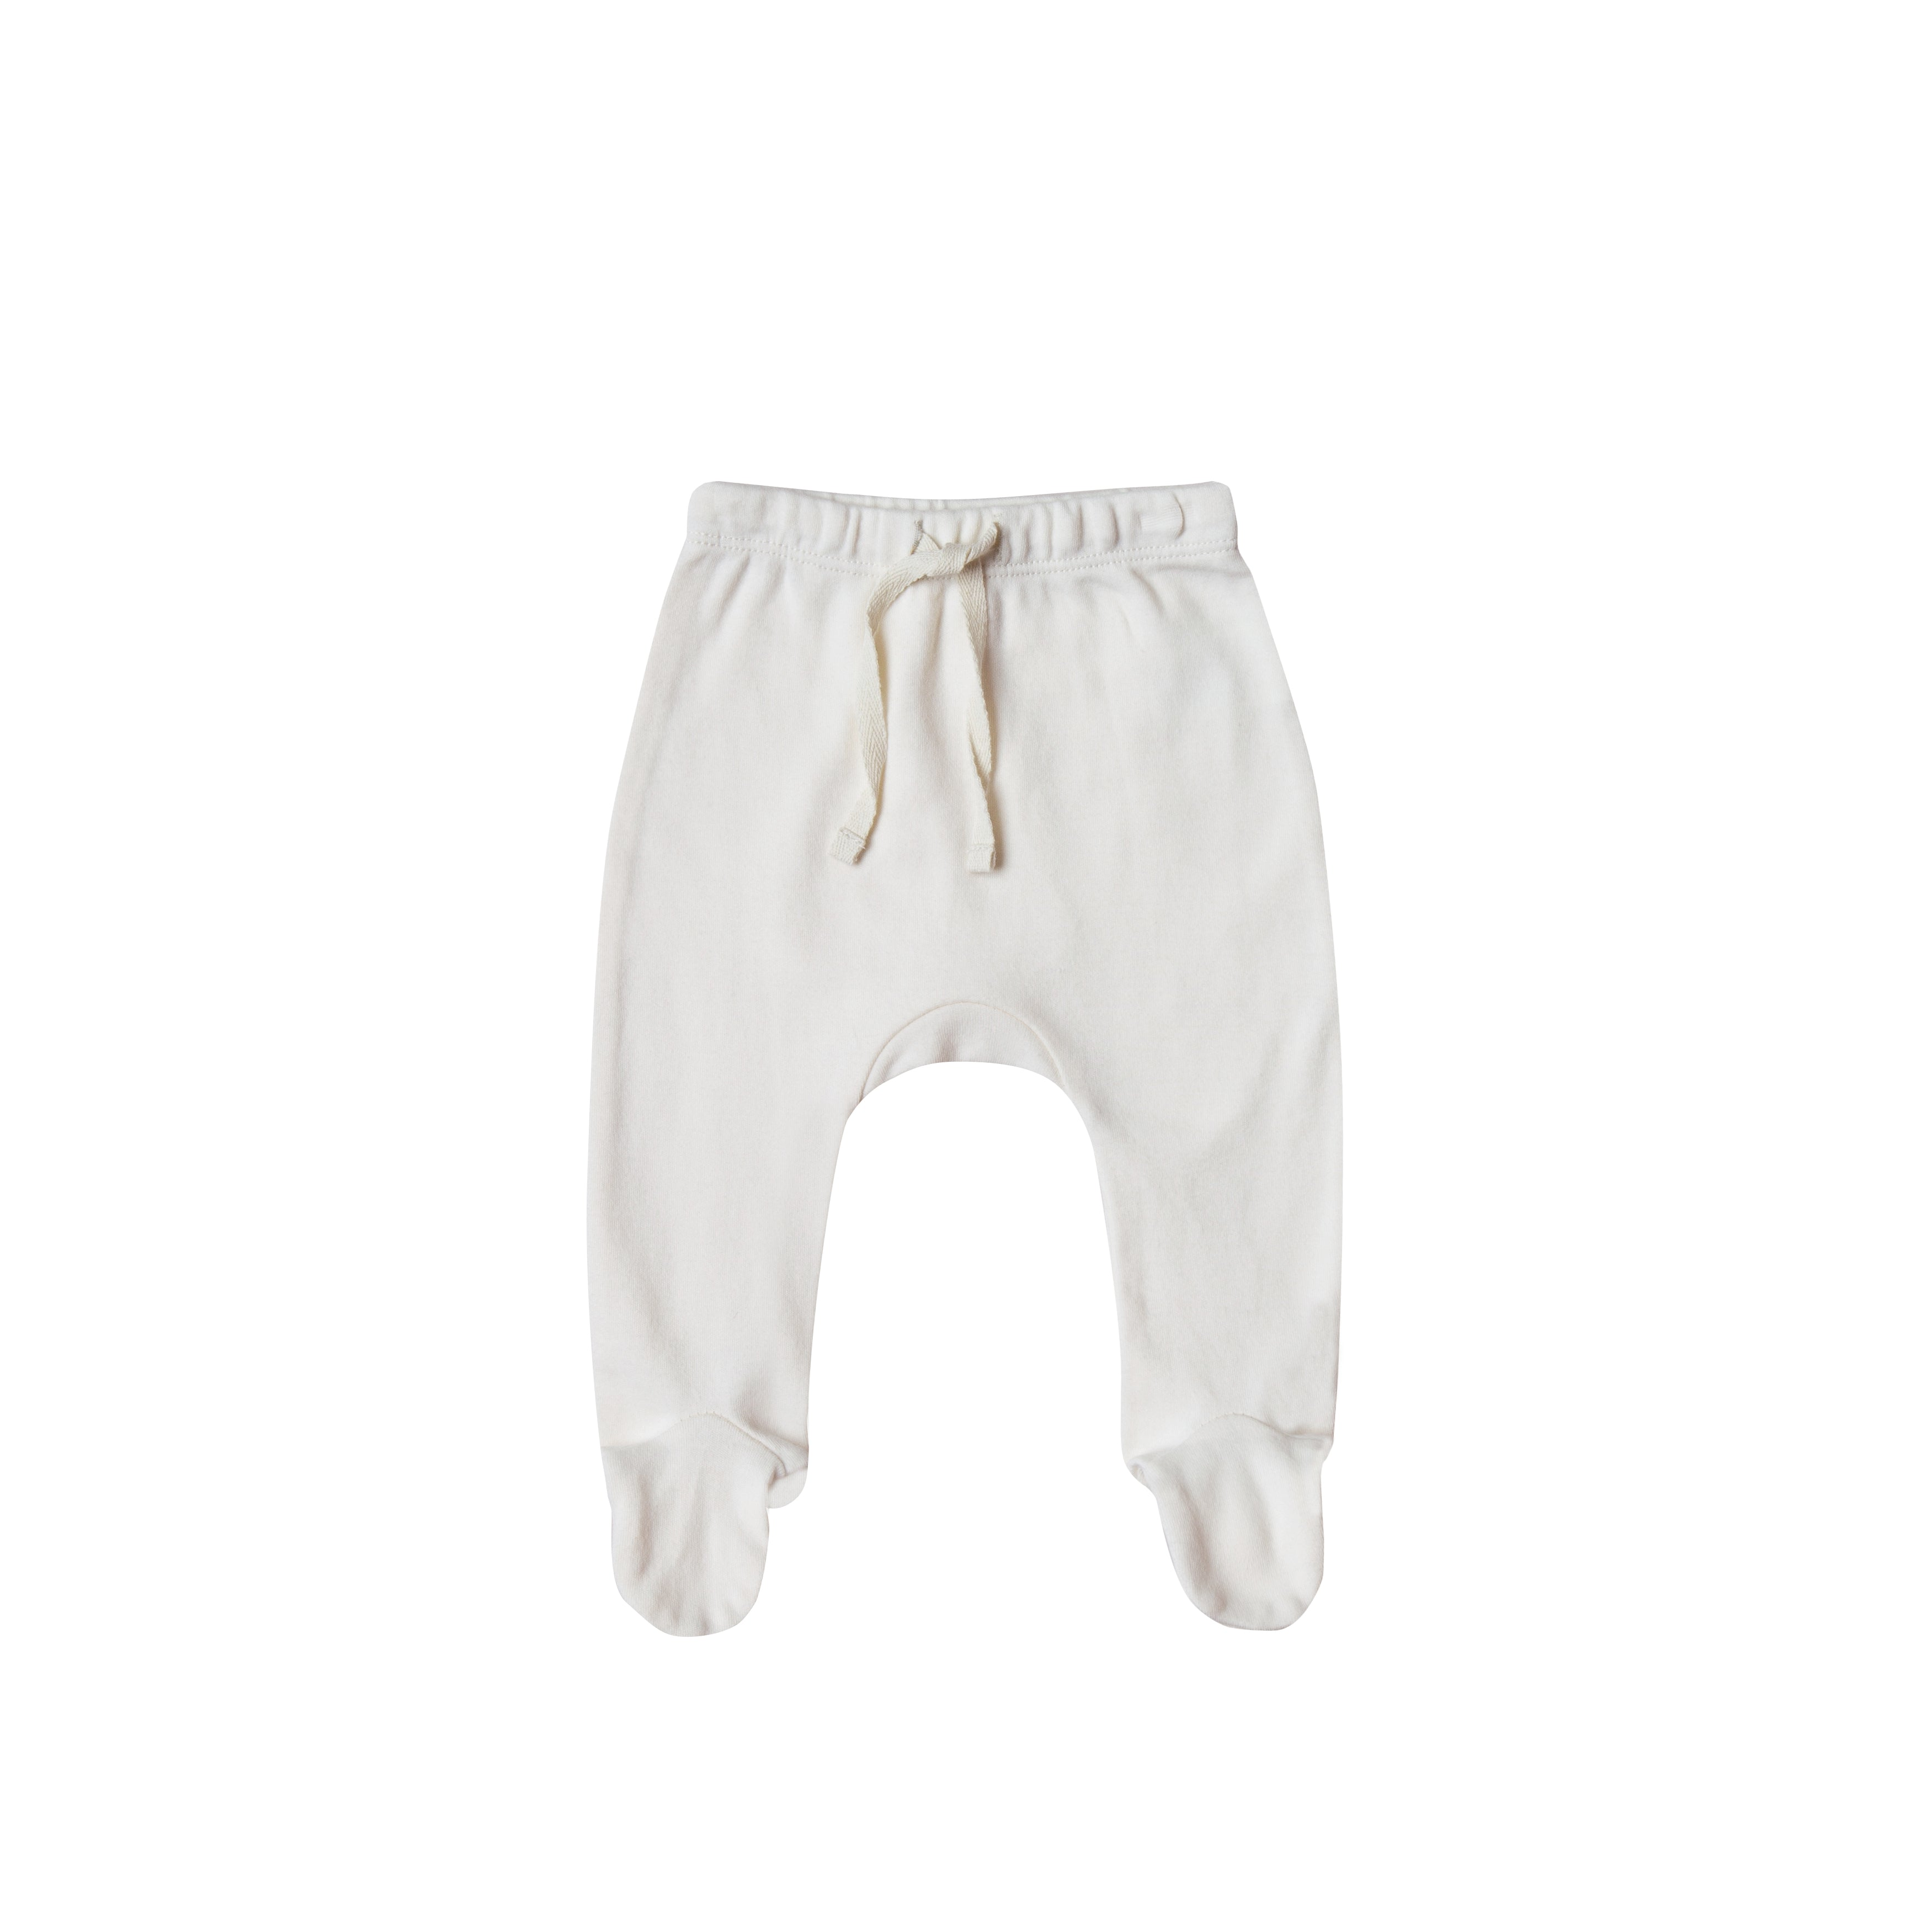 Quincy Mae Ivory Footed Pants